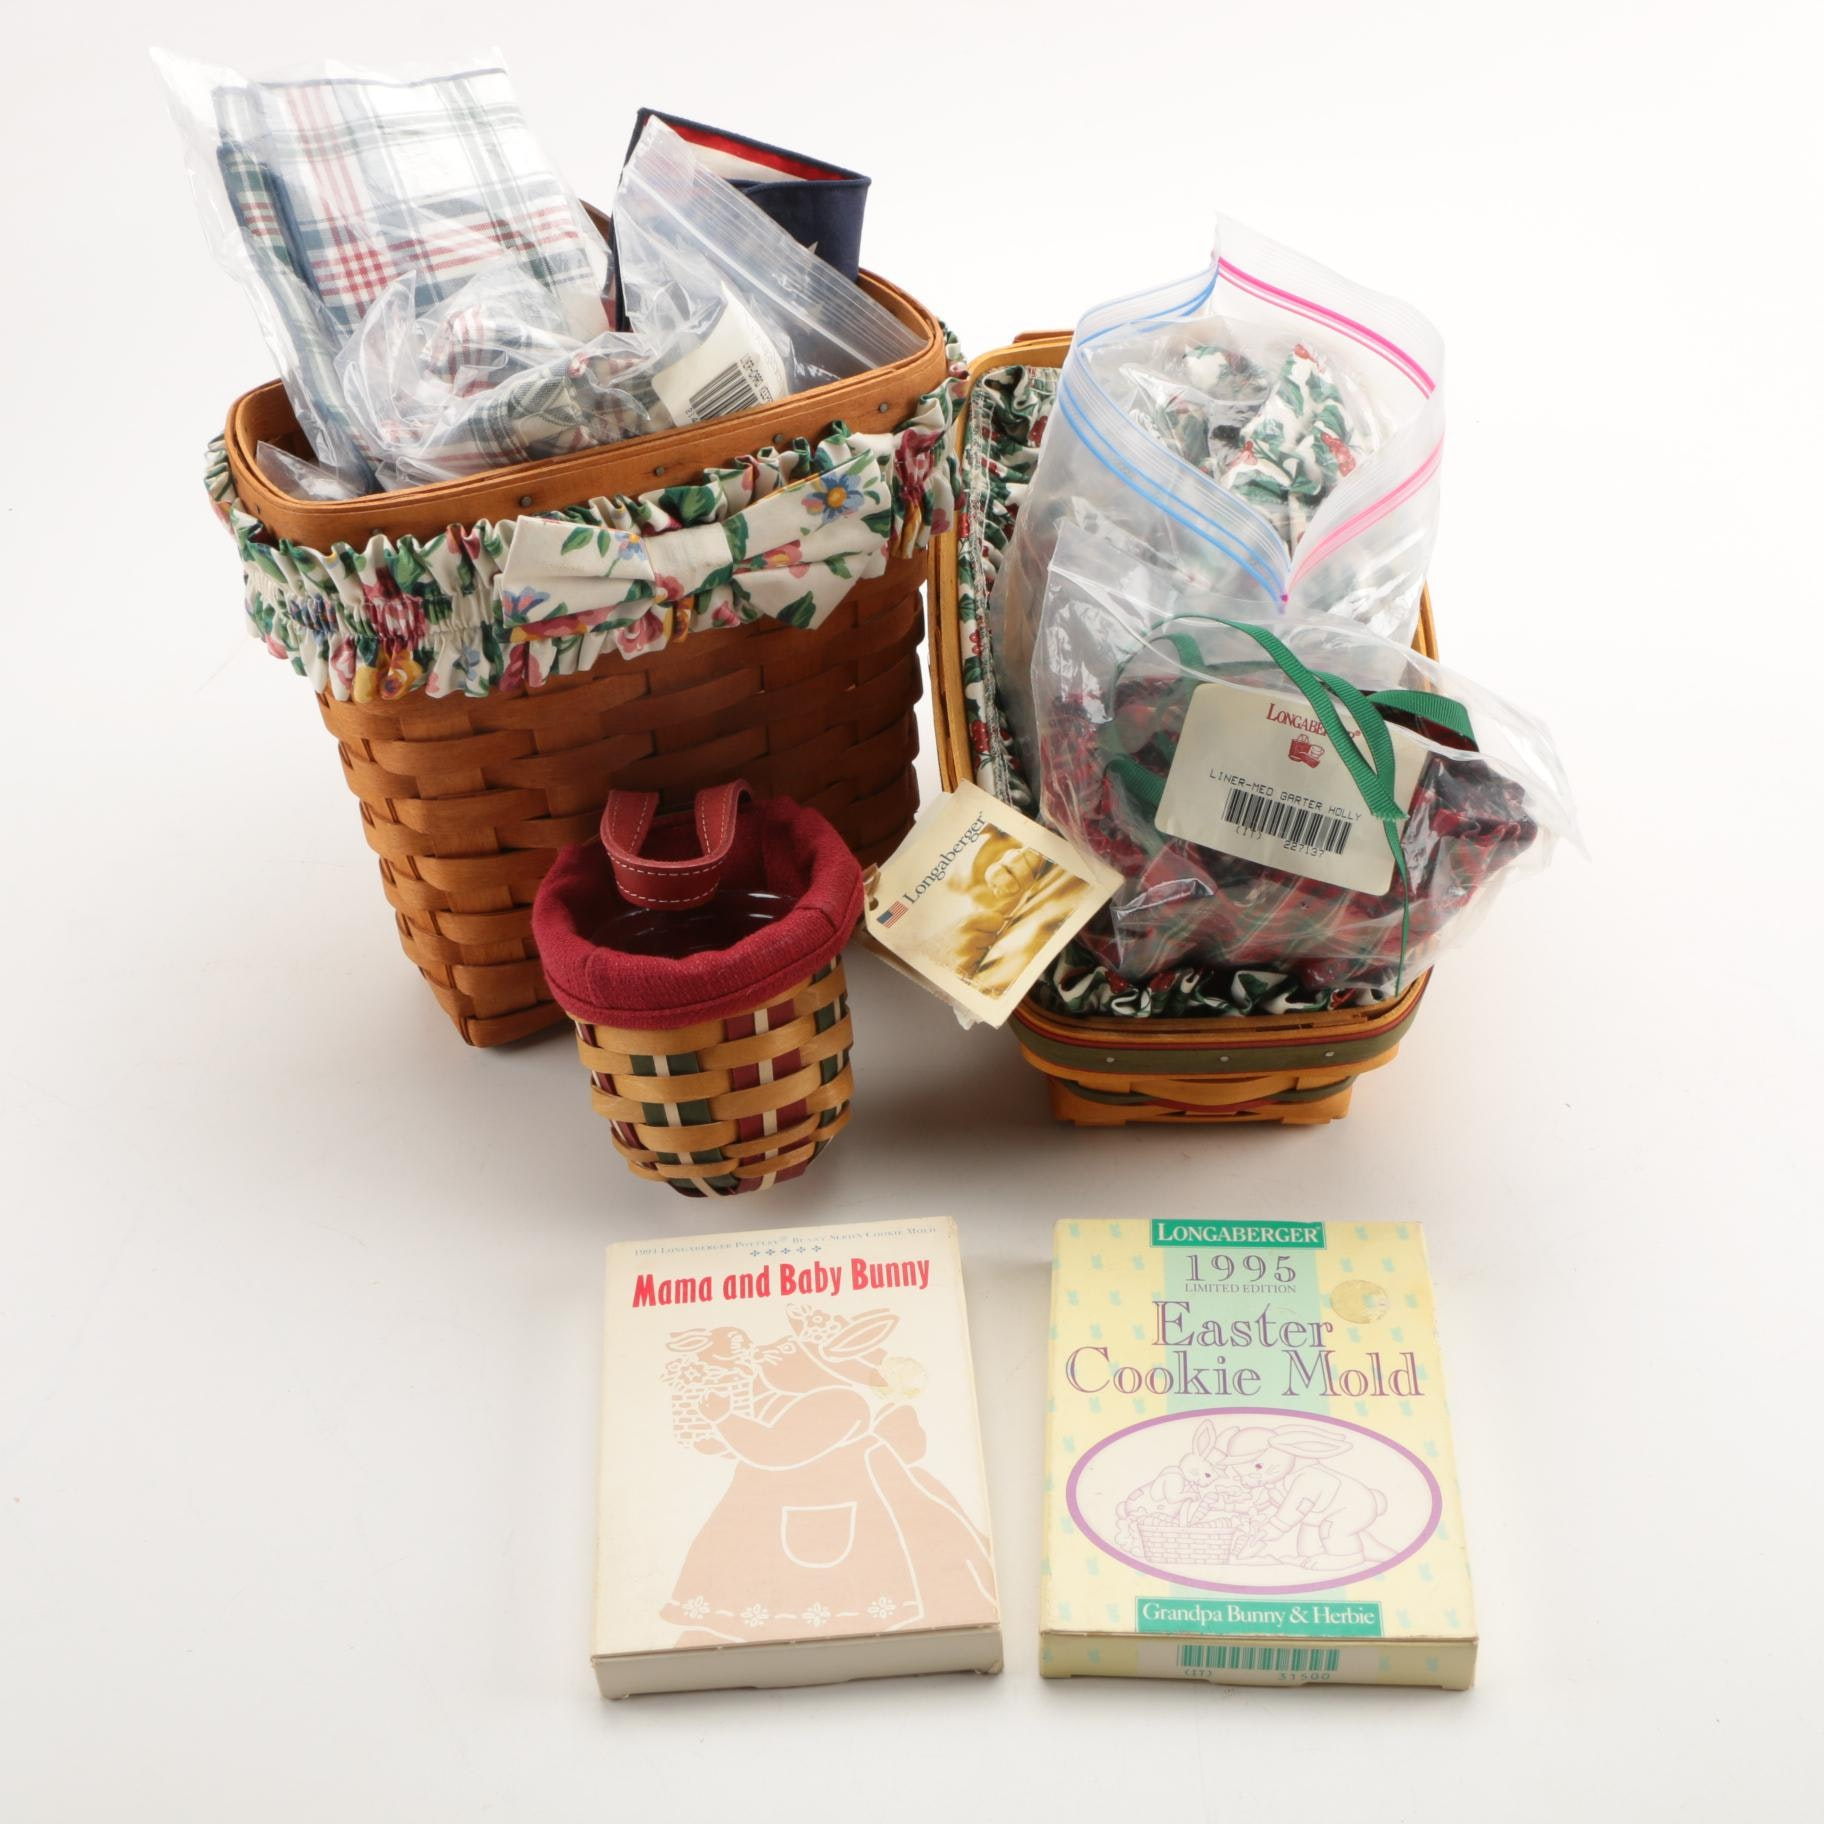 Longaberger Baskets With Decorative Cloth Linings and Cookie Molds